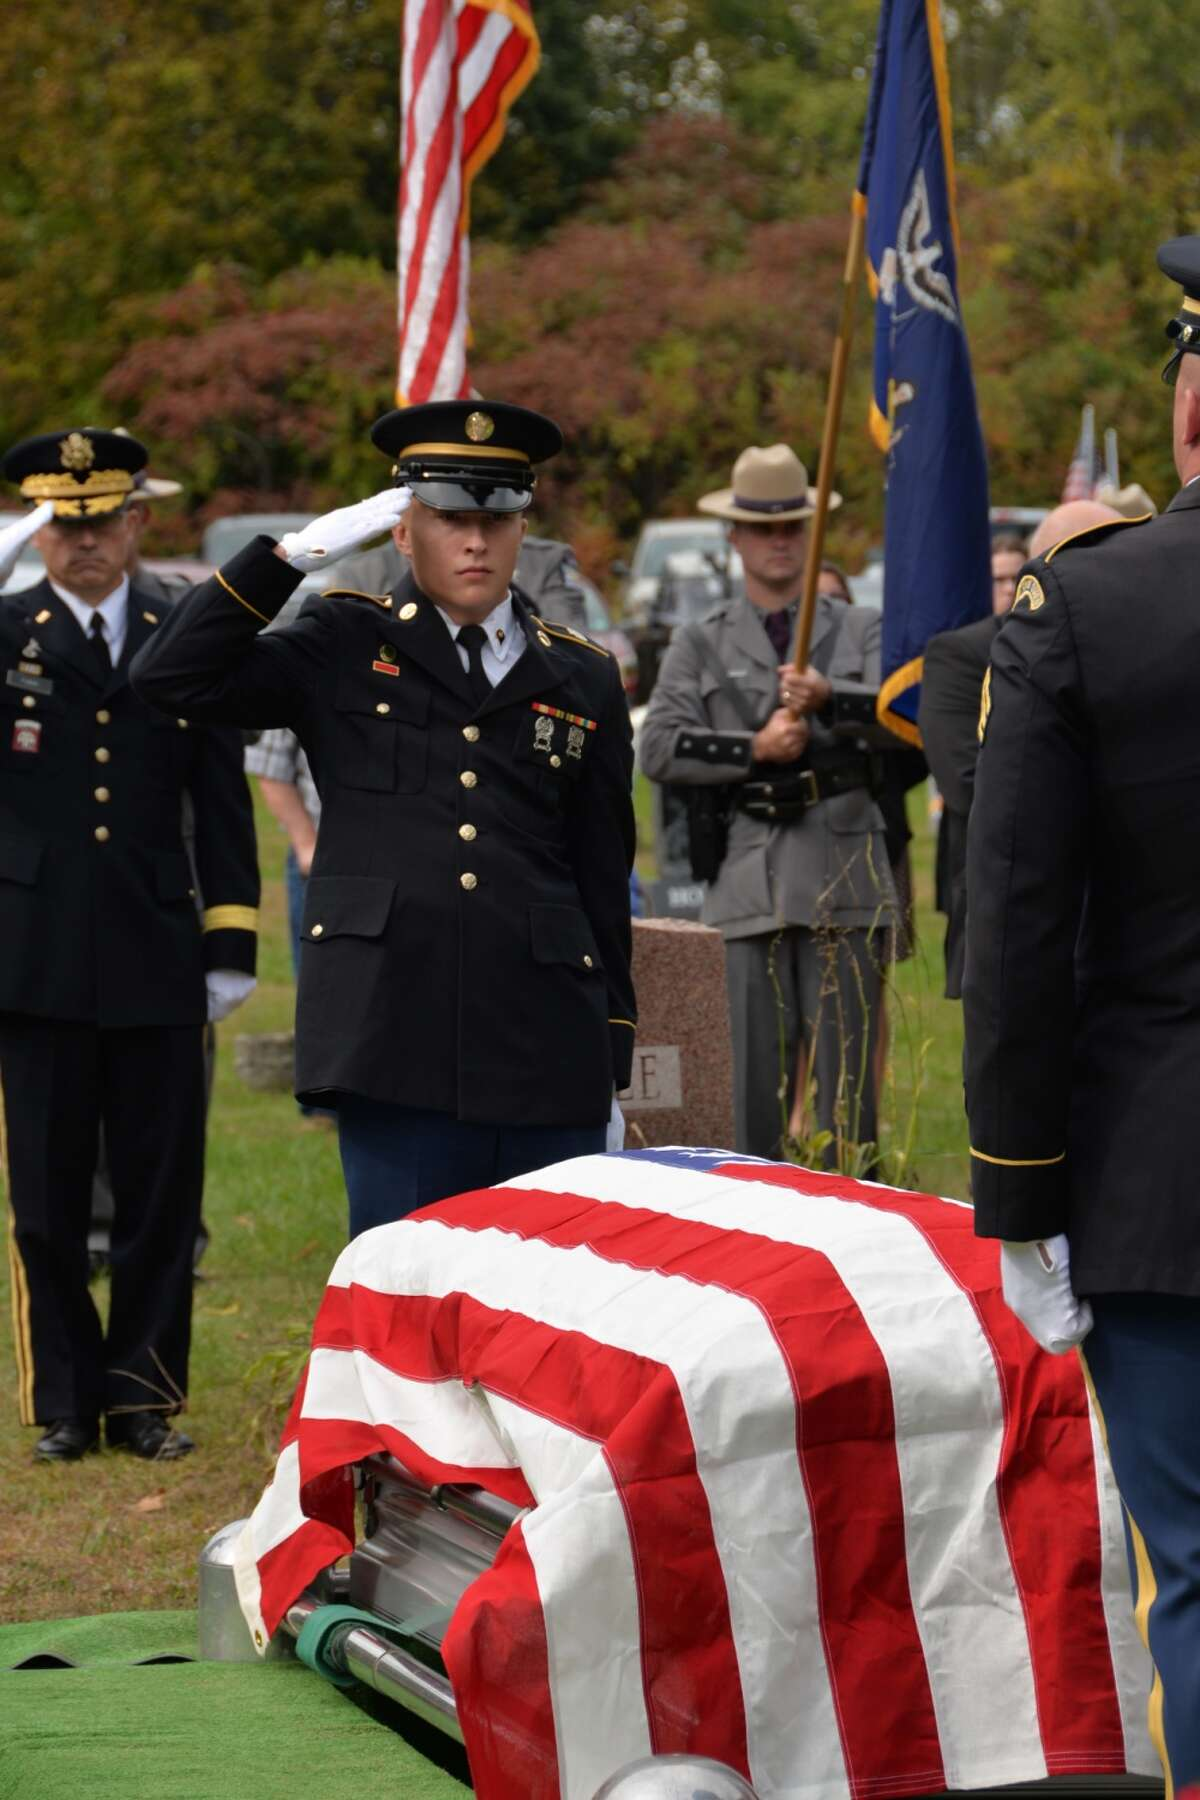 New York Army National Guard Spc. Ryan Gosse, center, and Army Brig. Gen. Brett Funck, Deputy Commanding General of the 10th Mountain Division, render graveside honors during the funeral of Army Medal of Honor recipient Tech. Sgt. Francis S. Currey at the Mt. Pleasant Cemetery in South Bethlehem, N.Y., October 12, 2019. Currey, 94, from Selkirk, N.Y., died October 8. He received the Medal of Honor for valor displayed as an infantryman during the Battle of the Bulge in World War II. Members of the New York Military Forces Honor Guard provided military honors for the funeral service. (U.S. National Guard photo by Col. Richard Goldenberg.)